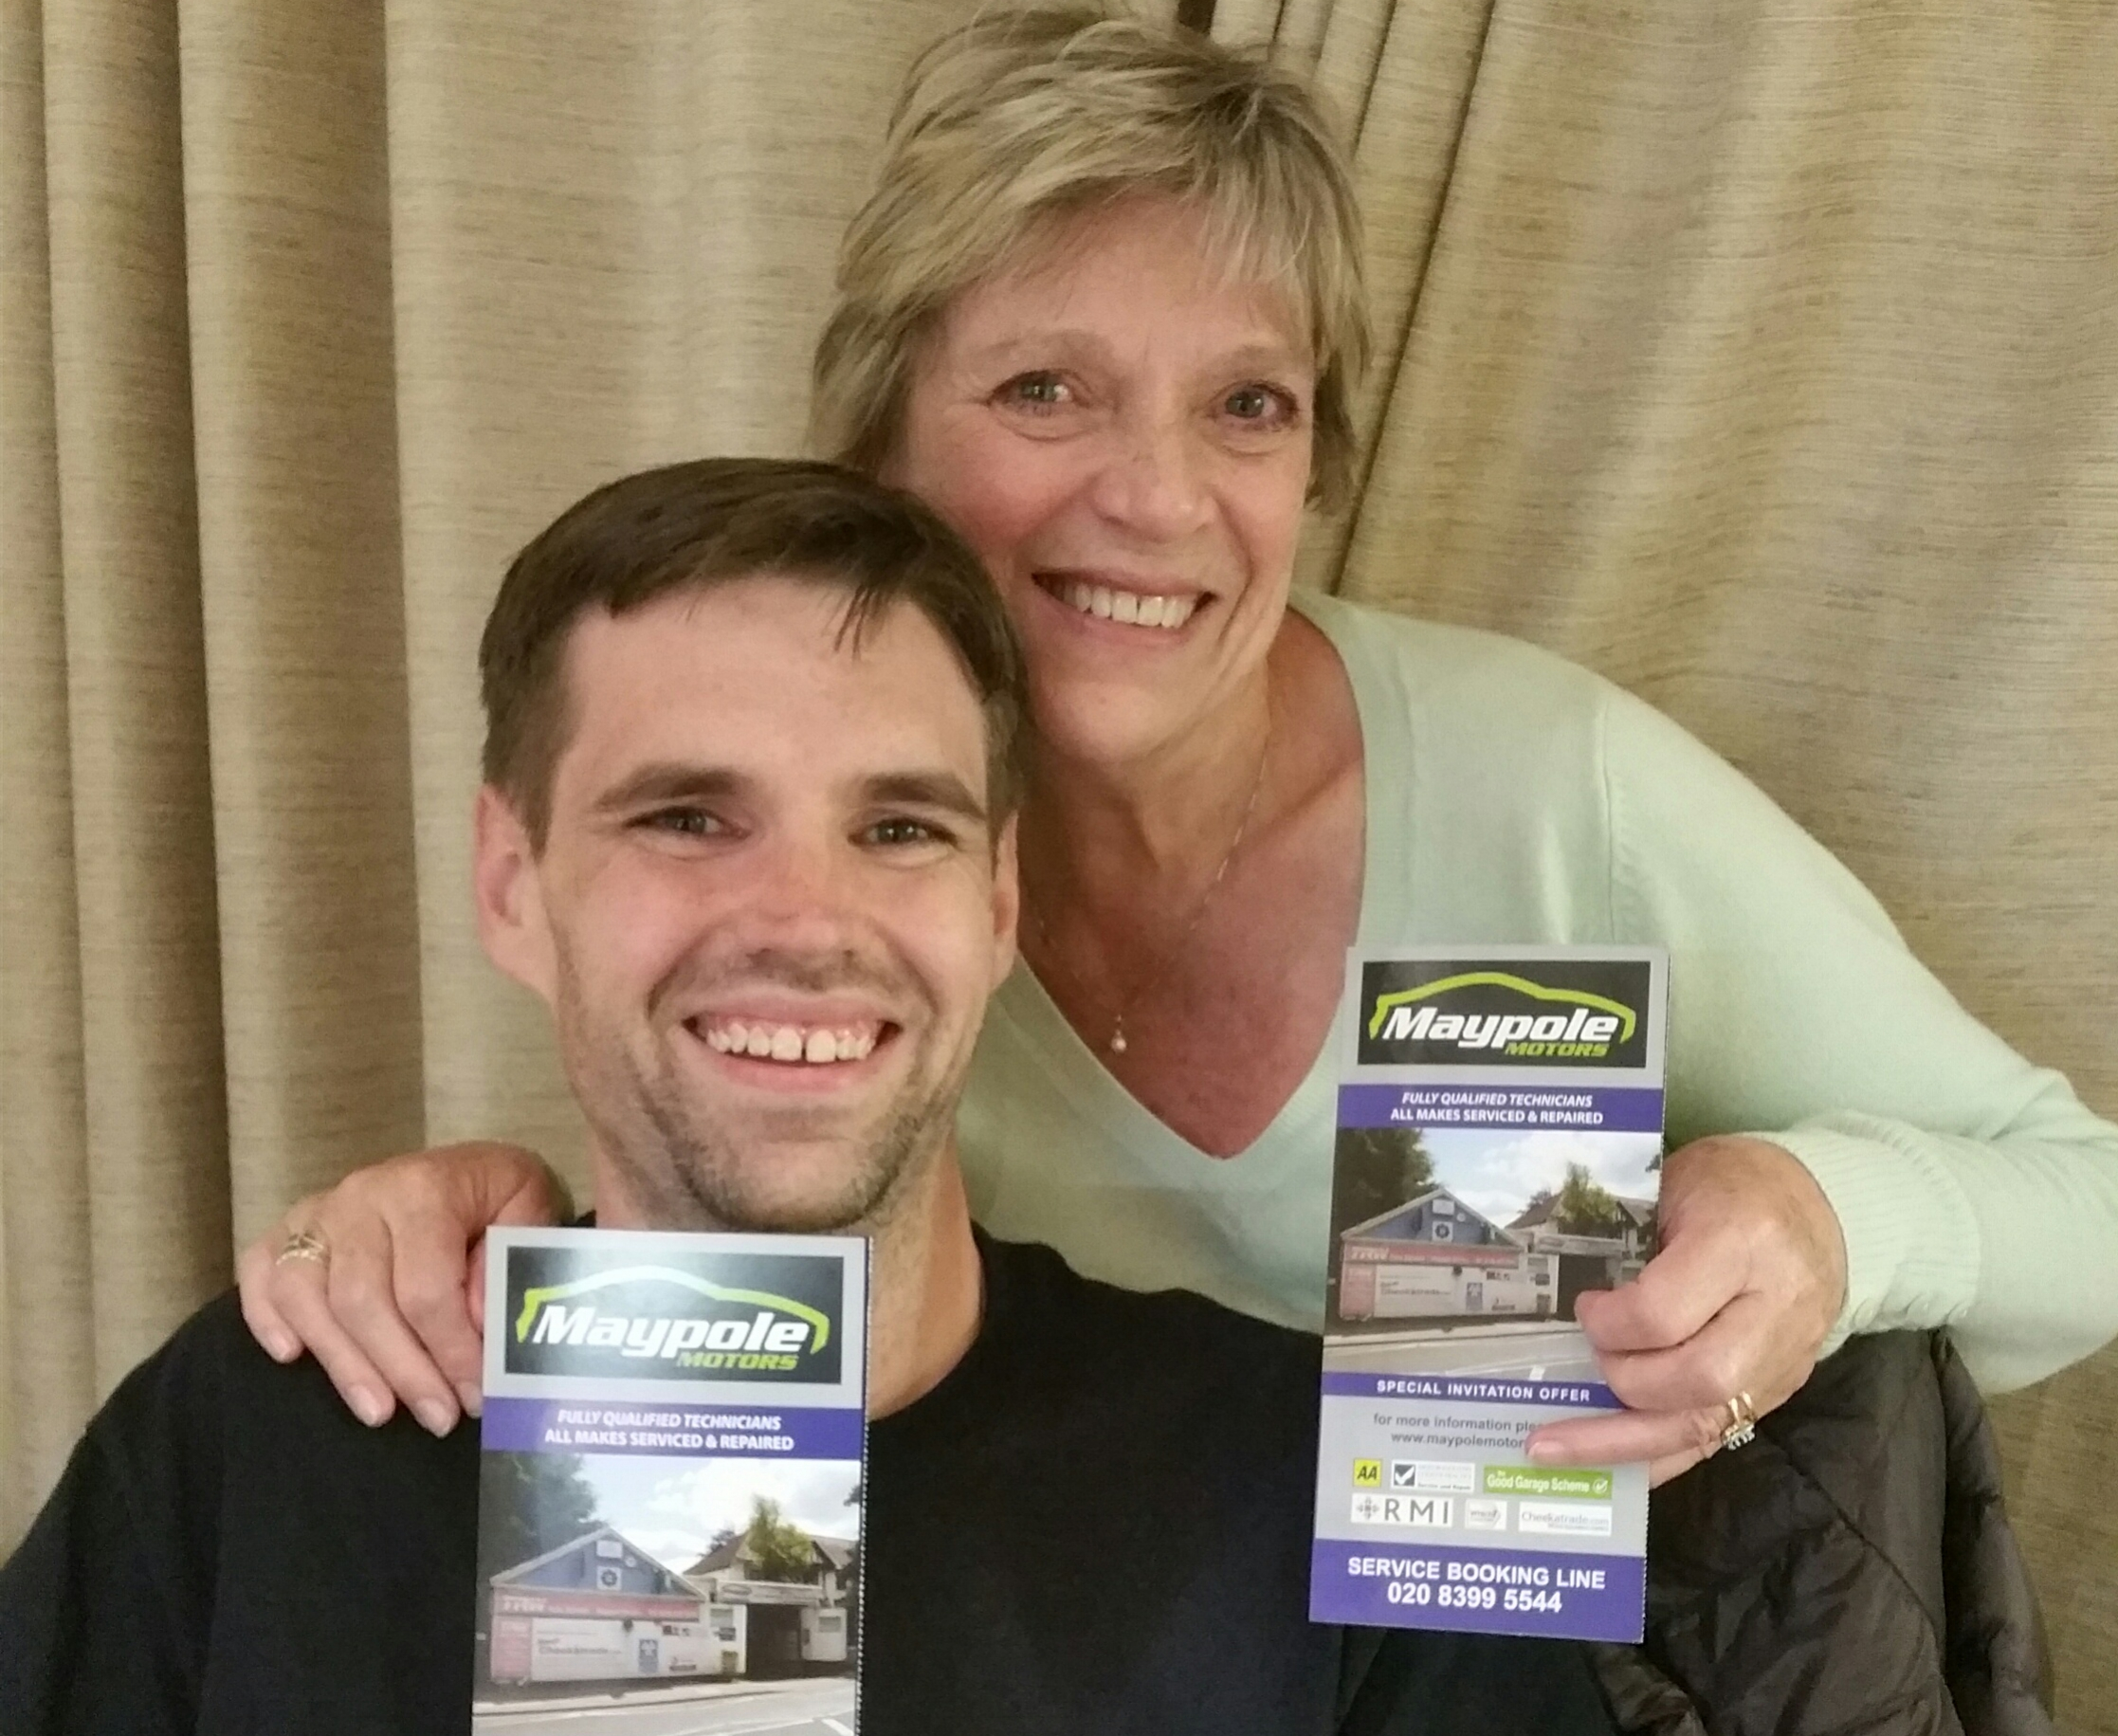 Mrs Johnstone from Surbiton, bought our EasyCarCare Promotion for her son and herself, for their local Partner Garage in Surbiton